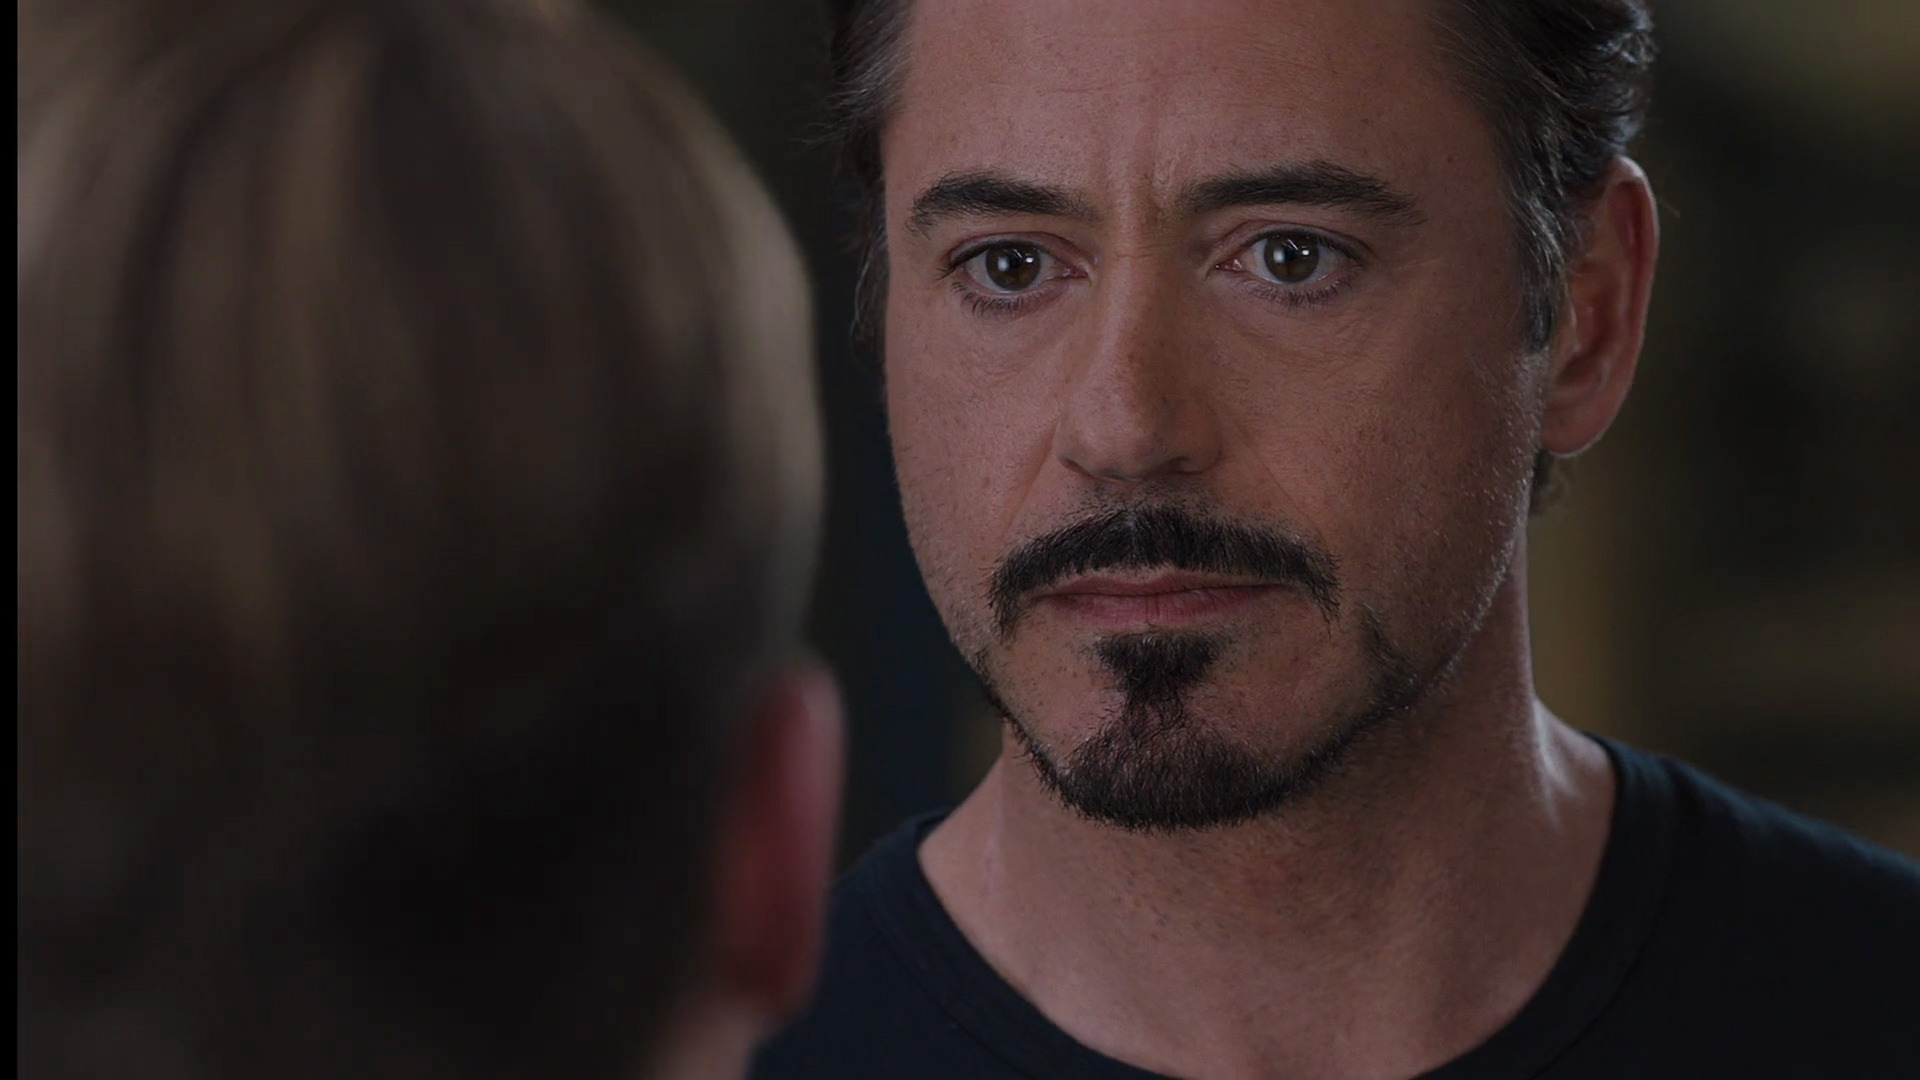 http://www.caps.media/201/2-avengers/full/avengers-movie-screencaps.com-8325.jpg